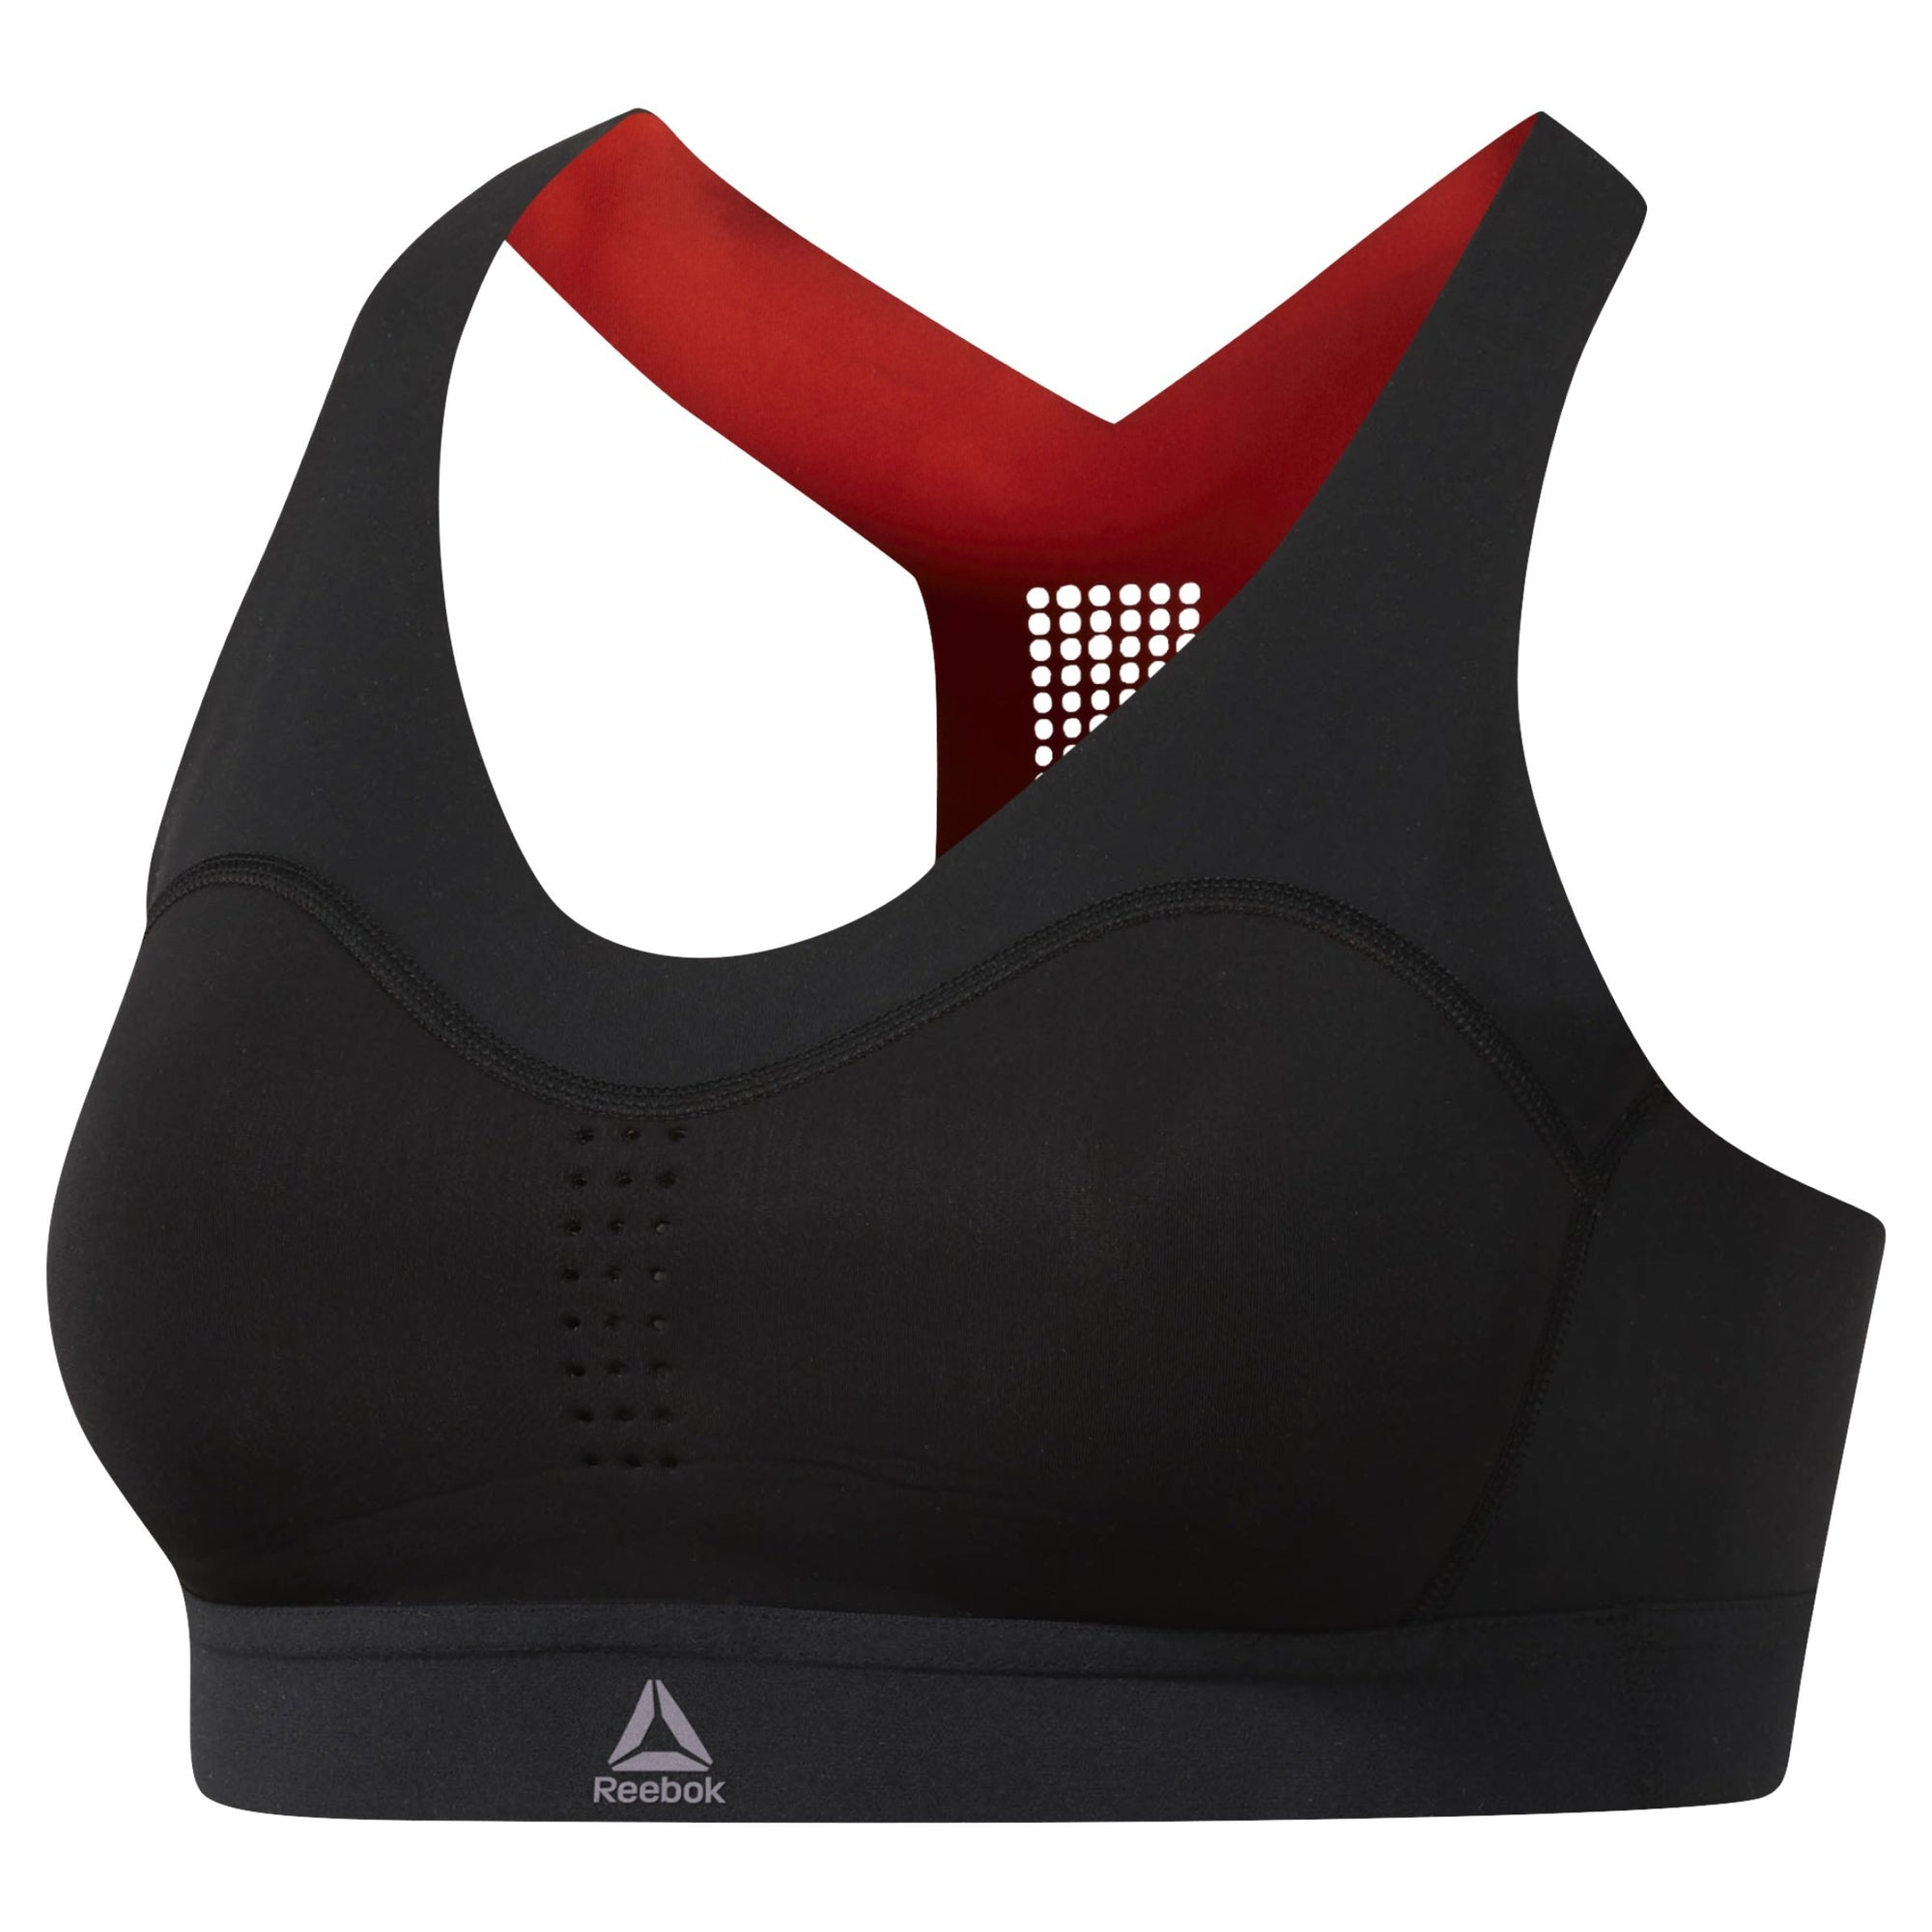 15d92ea011 Buy Reebok Women Puremove Sports Bra